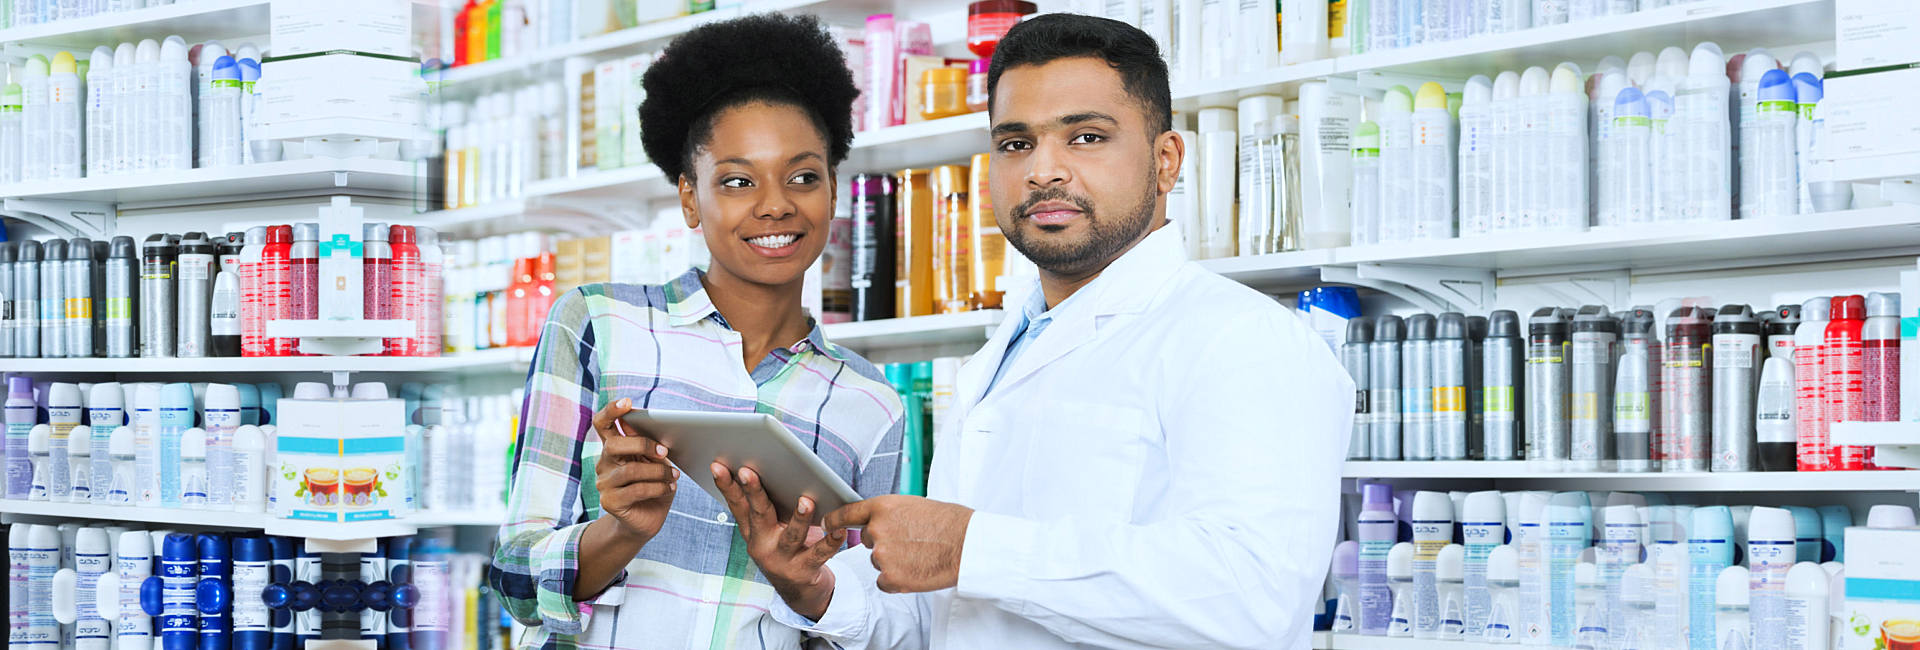 pharmacist and a smiling customer